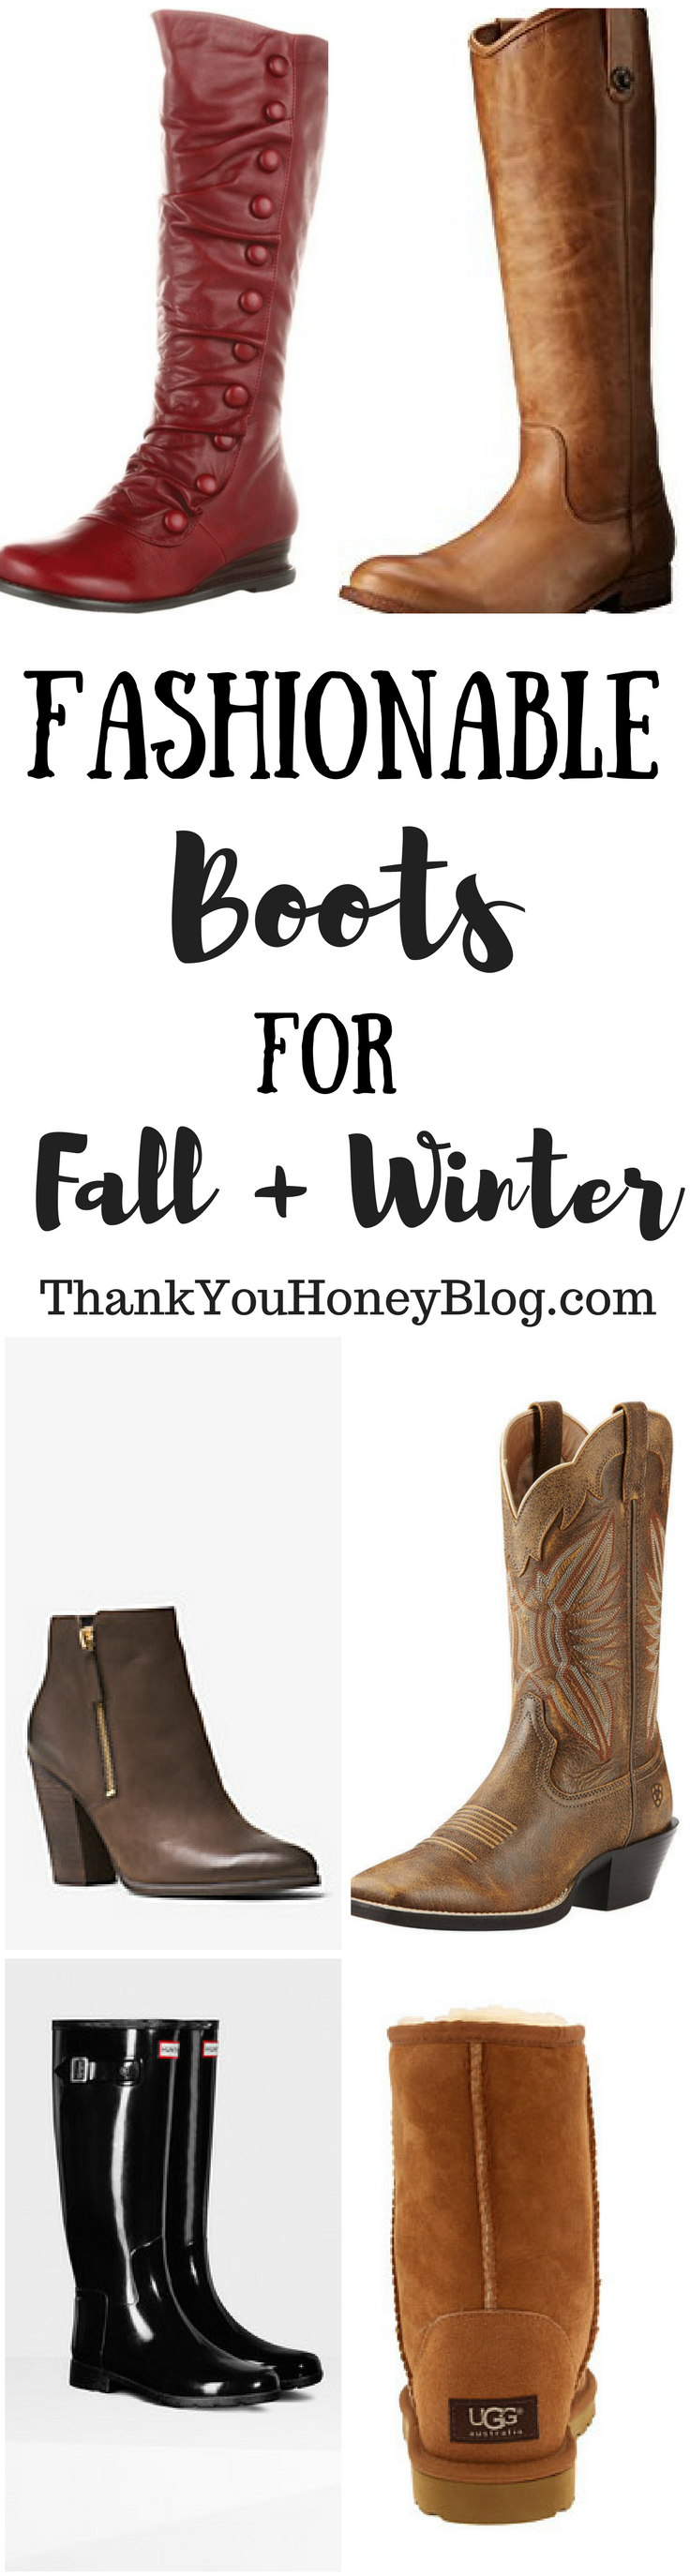 Fashionable Boots for Fall and Winter